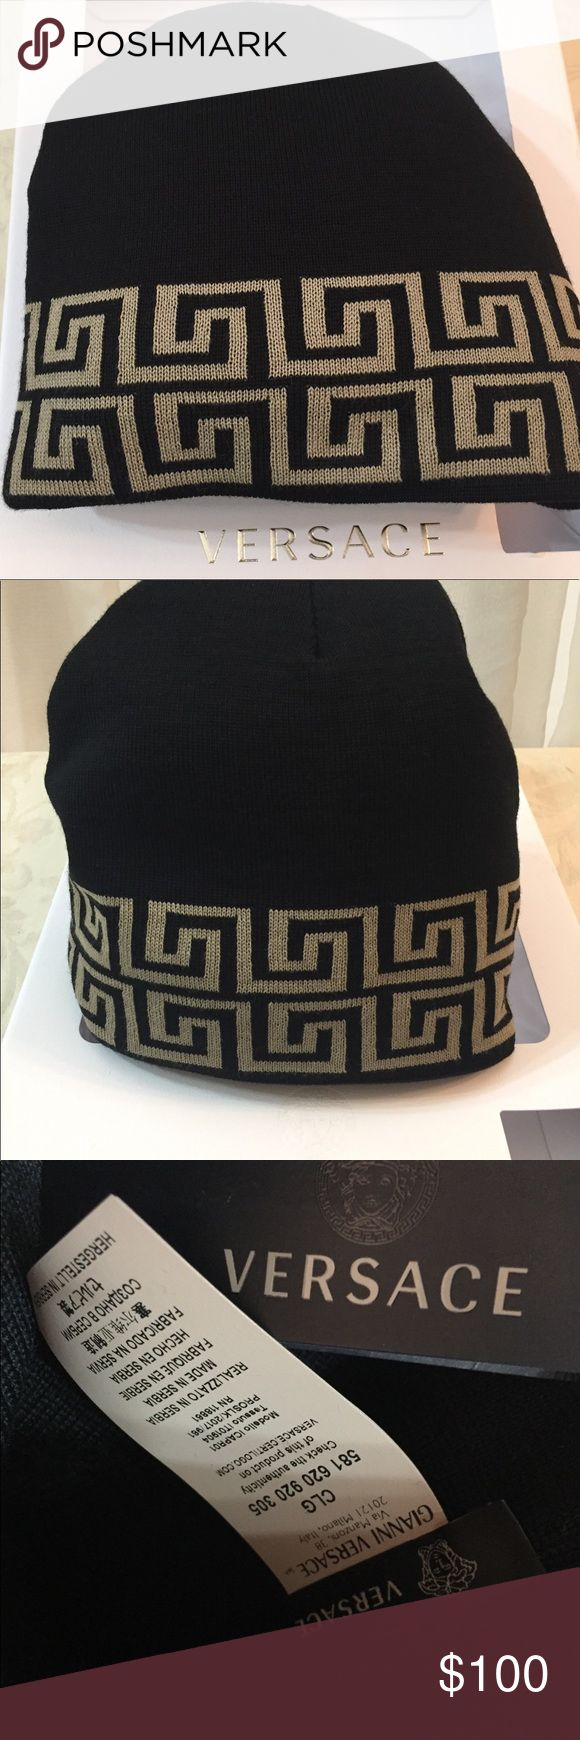 🆕 Versace Logos De Luxe Beanie Authentic Versace Beanie, black and beige 100% wool, new condition with tags. Versace Accessories Hats